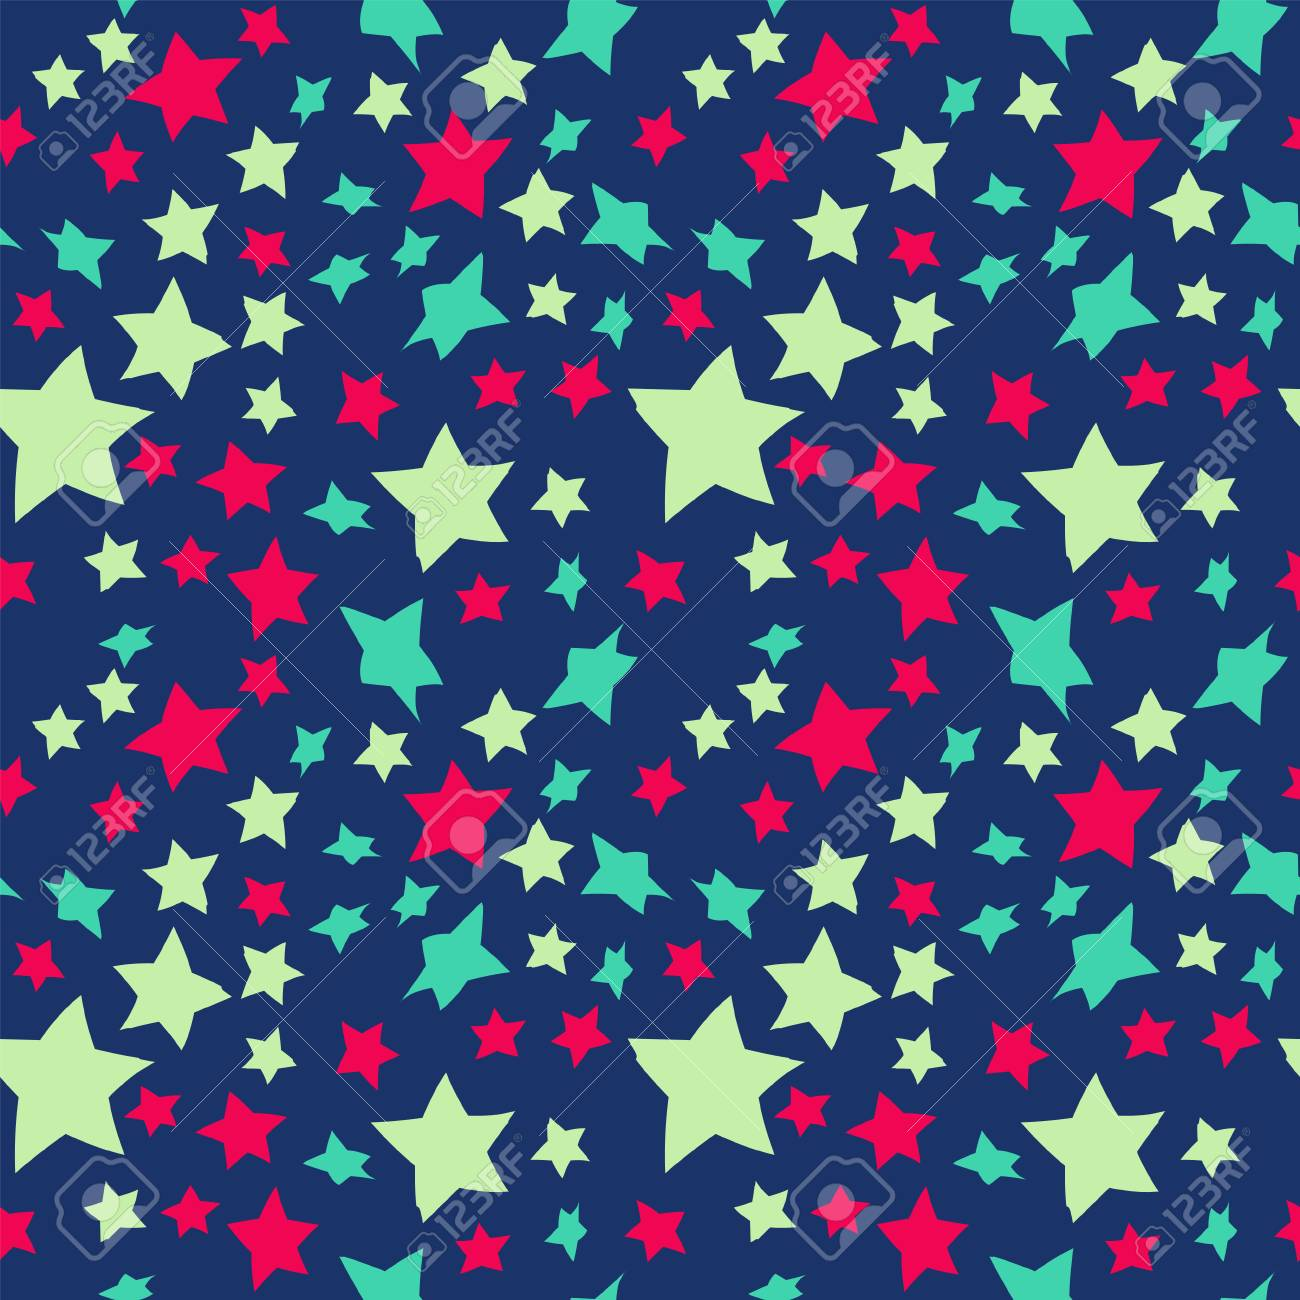 Star Patterned Wallpaper For Scrapbooking Memphis Style Royalty 1300x1300